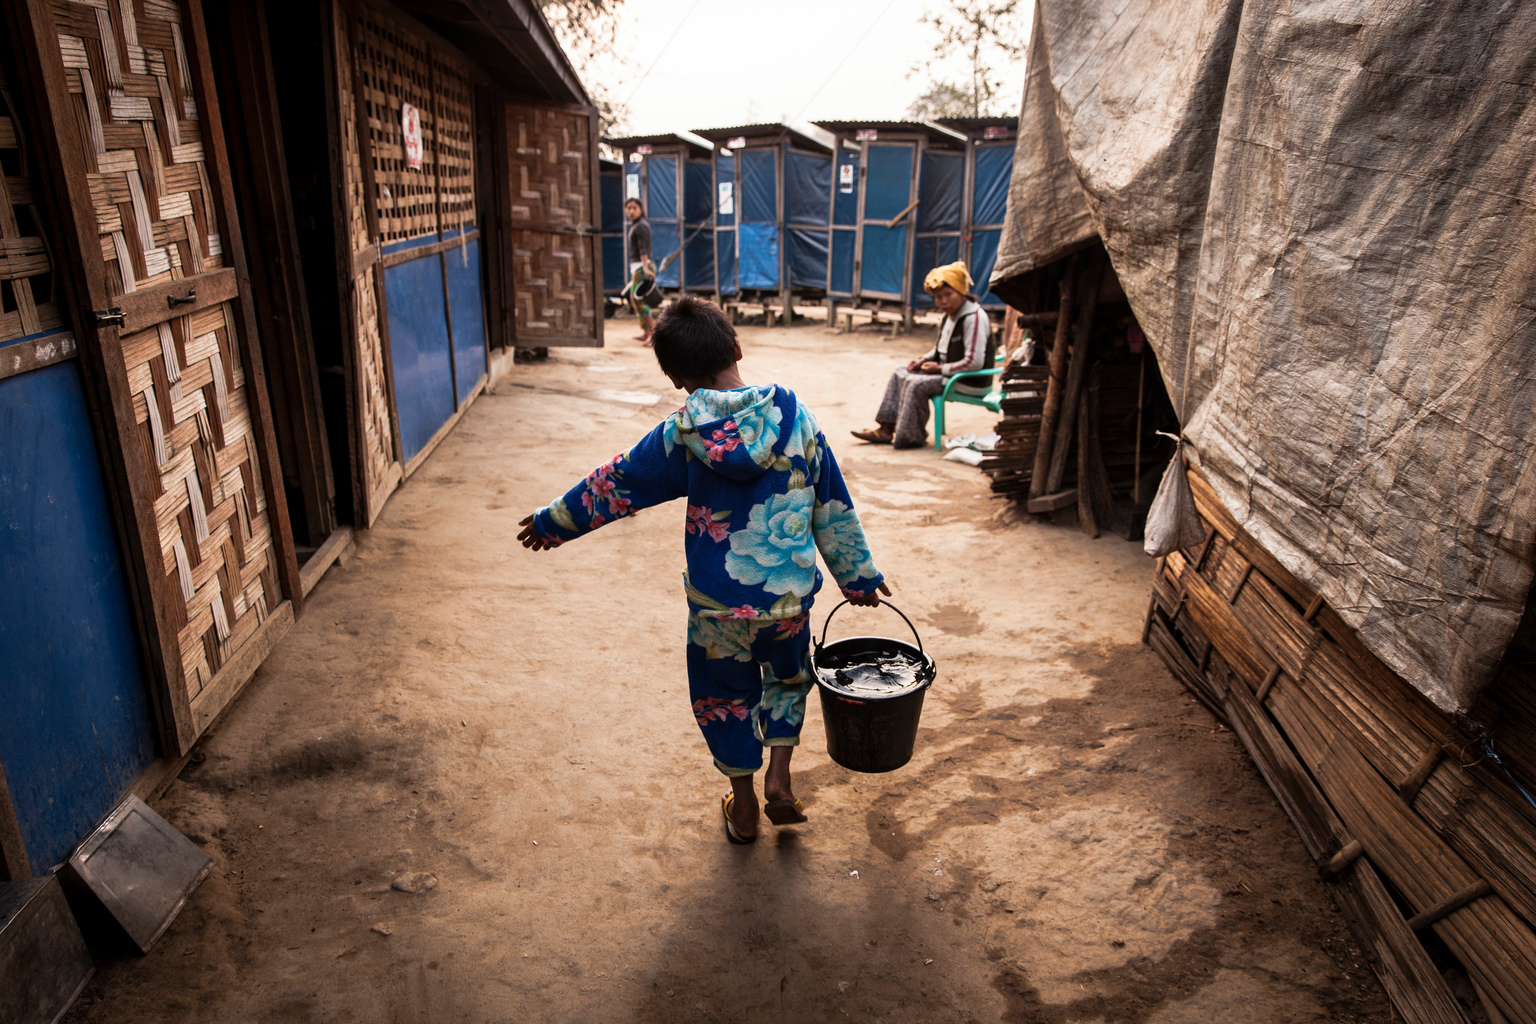 Aung Din, 12, displaced from Mung Ding Pa, collects water every morning for his household at the Phan Khar Kone IDP camp in Bhamo city, Kachin State, Myanmar, Wednesday 29 March 2017. Aung Din lives with his grandmother, mother and sister in the camp - his father was killed in a blast, most likely from a landmine while herding cattle, when fighting erupted between Kachin Independence Army (KIA) and the Myanmar Army in 2013. In 2017, working with the Government of Myanmar, UNICEF will strive to meet the basic needs of the most vulnerable internally displaced children. Myanmar is experiencing three protracted humanitarian crises, each with its own set of complex underlying factors. In Rakhine State, inter-communal violence that erupted in 2012 continues to plague 120,000 internally displaced people spread across 40 camps or informal sites, as well as host communities. Eighty per cent of the displaced are women and children. In Kachin State, armed conflict that reignited in 2011 continues to impact communities caught in the crossfire between an ethnic armed group and the Myanmar army. Nearly 87,000 people remain displaced as a result, including 40 per cent who are in areas outside of government control. An additional 11,000 people remain displaced in northern Shan State, where a similar conflict broke out in 2011. Compounding the protracted crises are issues related to religious and/or ethnic discrimination, exploitation, chronic poverty, vulnerability to natural disasters, statelessness, trafficking and humanitarian access. In addition to the humanitarian crises in Rakhine, Kachin and Shan states, Myanmar is impacted by humanitarian situations in other parts of the country, including natural disasters, health emergencies and small-scale displacements.